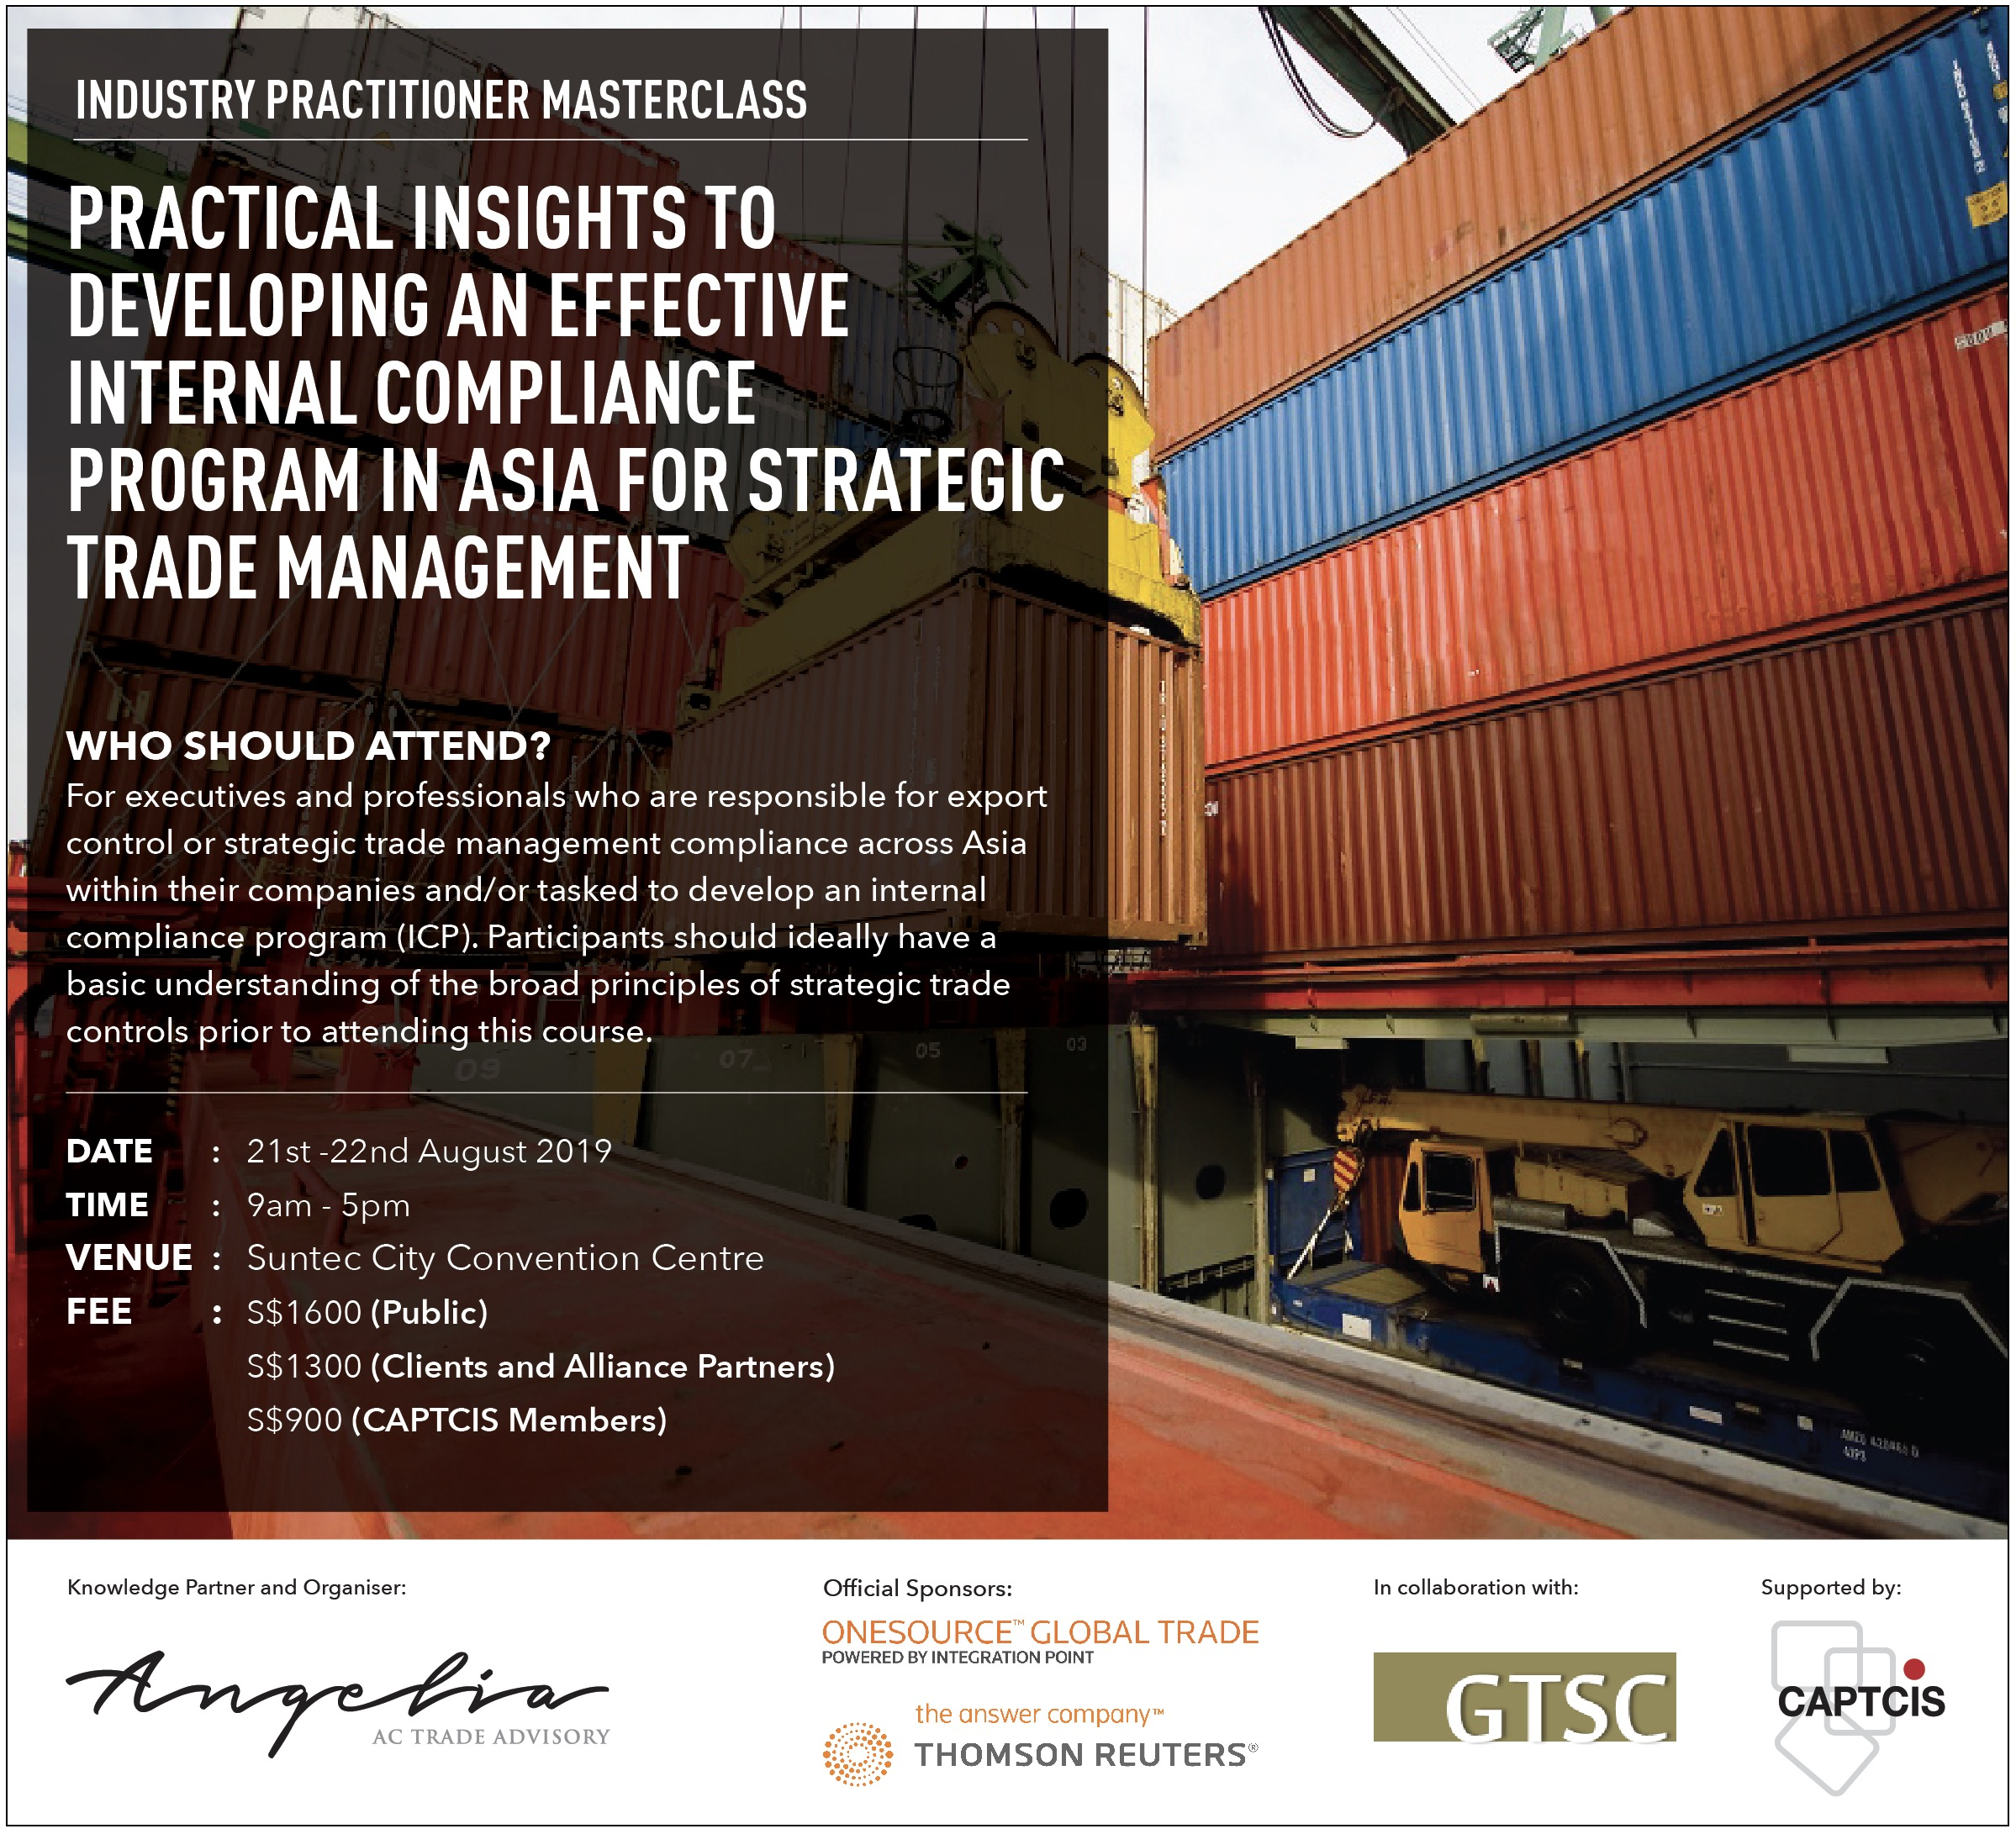 Practical Insights to Developing an Effective Internal Compliance Program in Asia for Strategic Trade Management